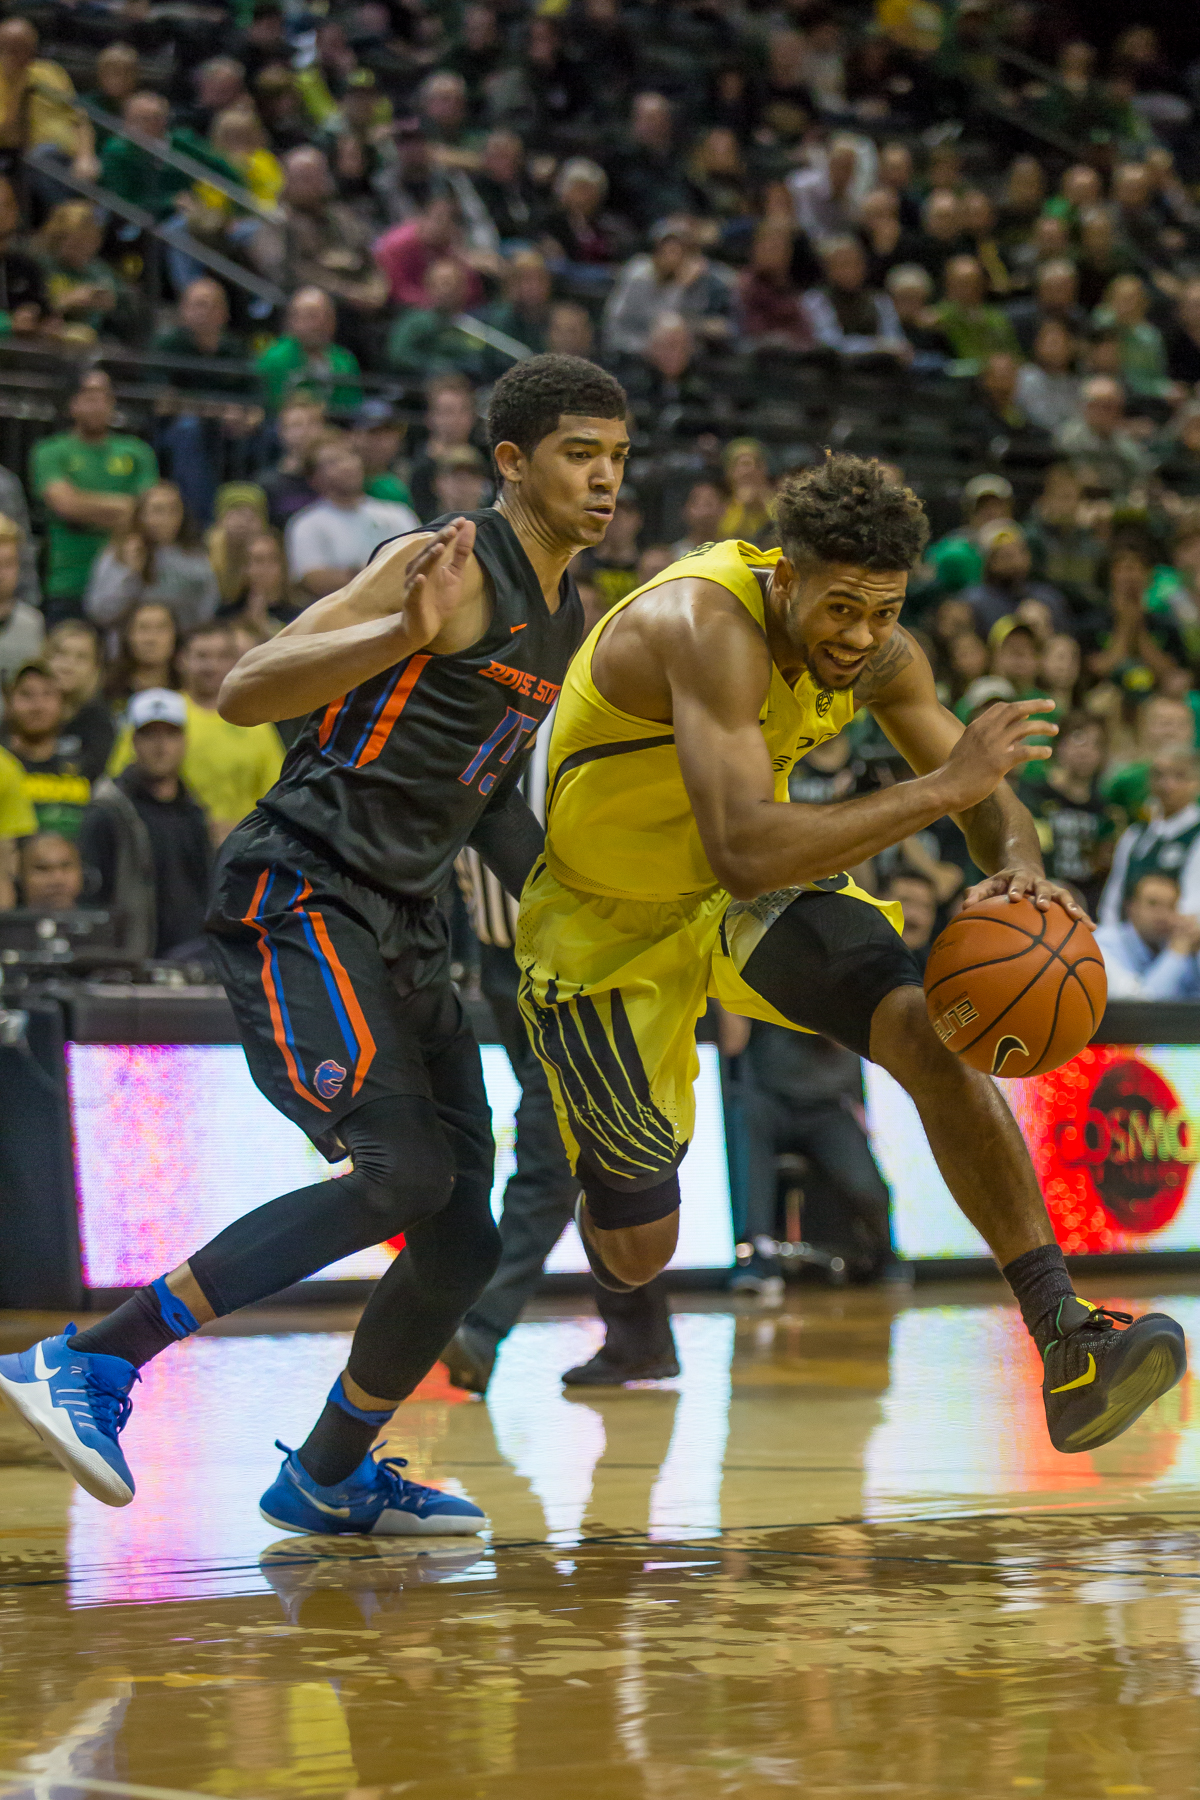 Oregon guard Tyler Dorsey (#5) drives past Boise State guard Chandler Hutchinson (#15). After trailing for most of the game, the Oregon Ducks defeated the Boise State Broncos 68-63. Photo by Dillon Vibes